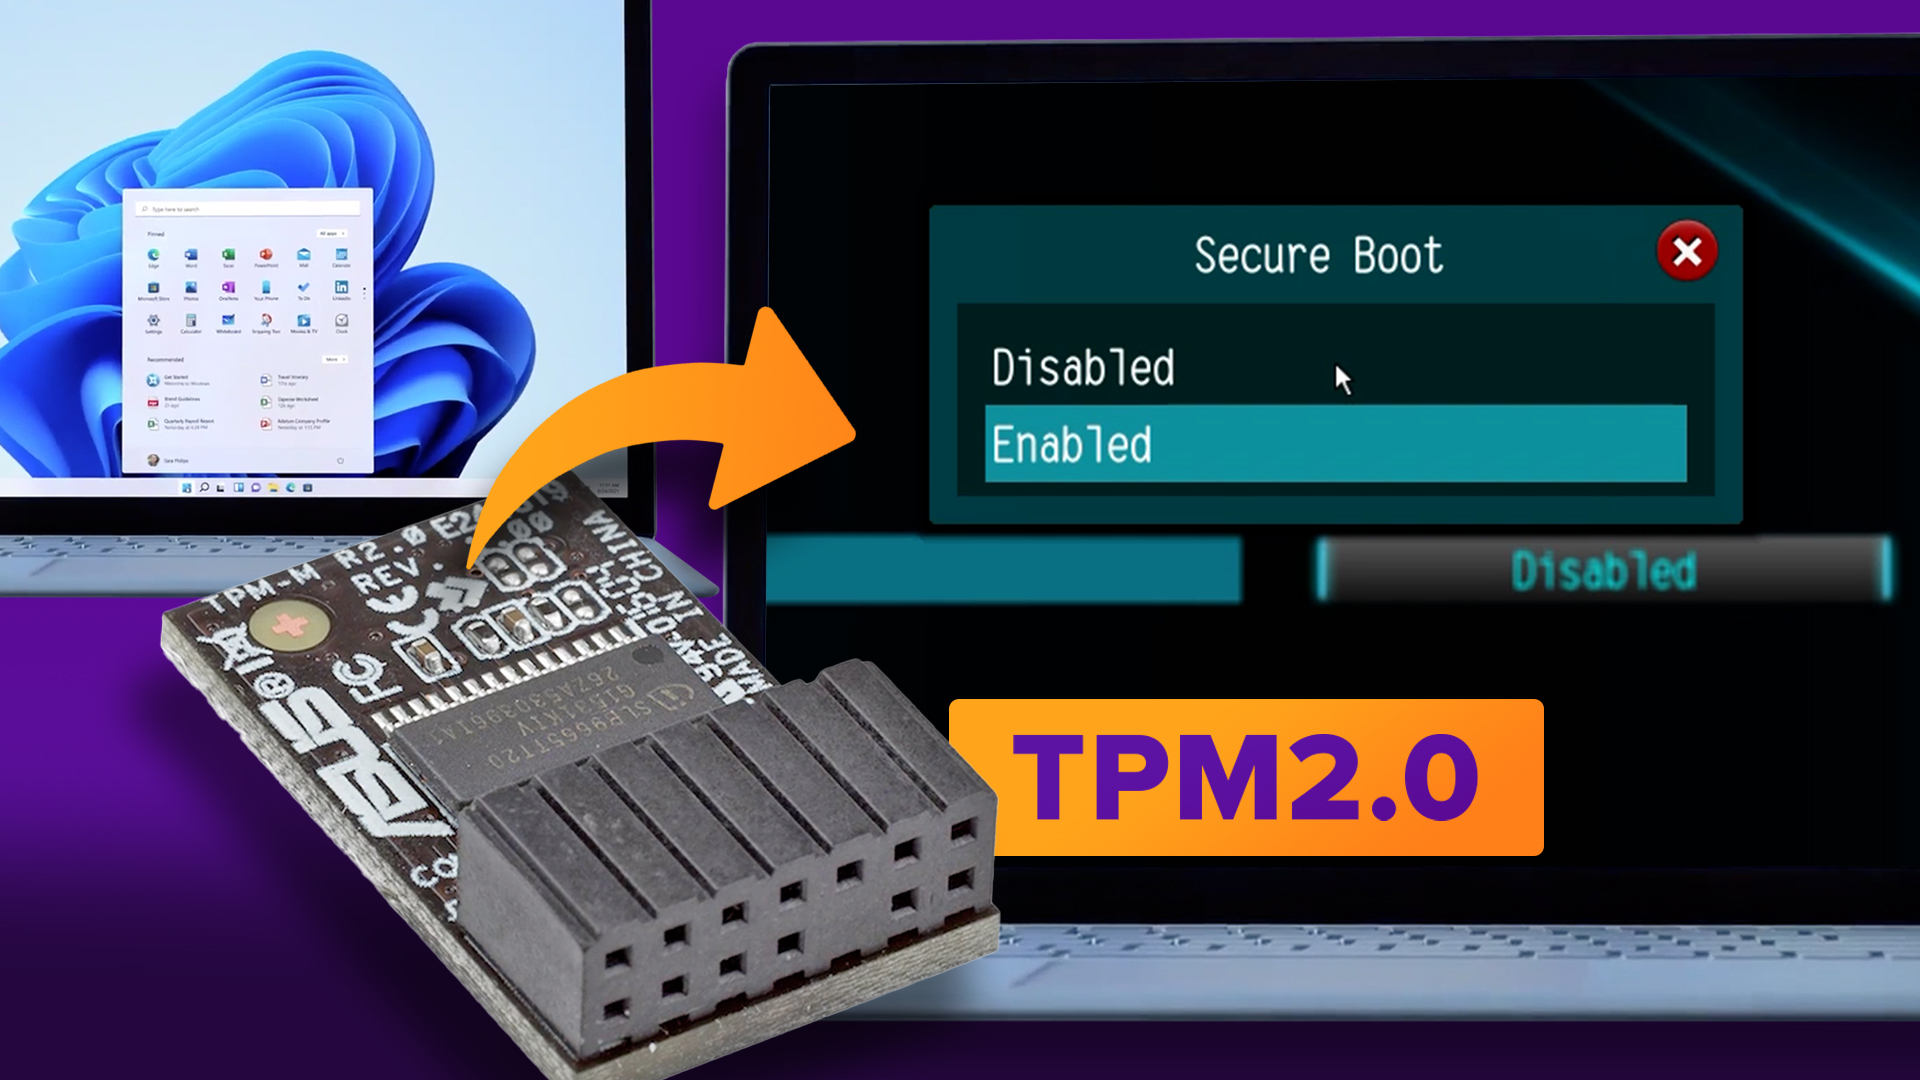 Video: How to enable TPM 2.0 and Secure Boot to install Windows 11